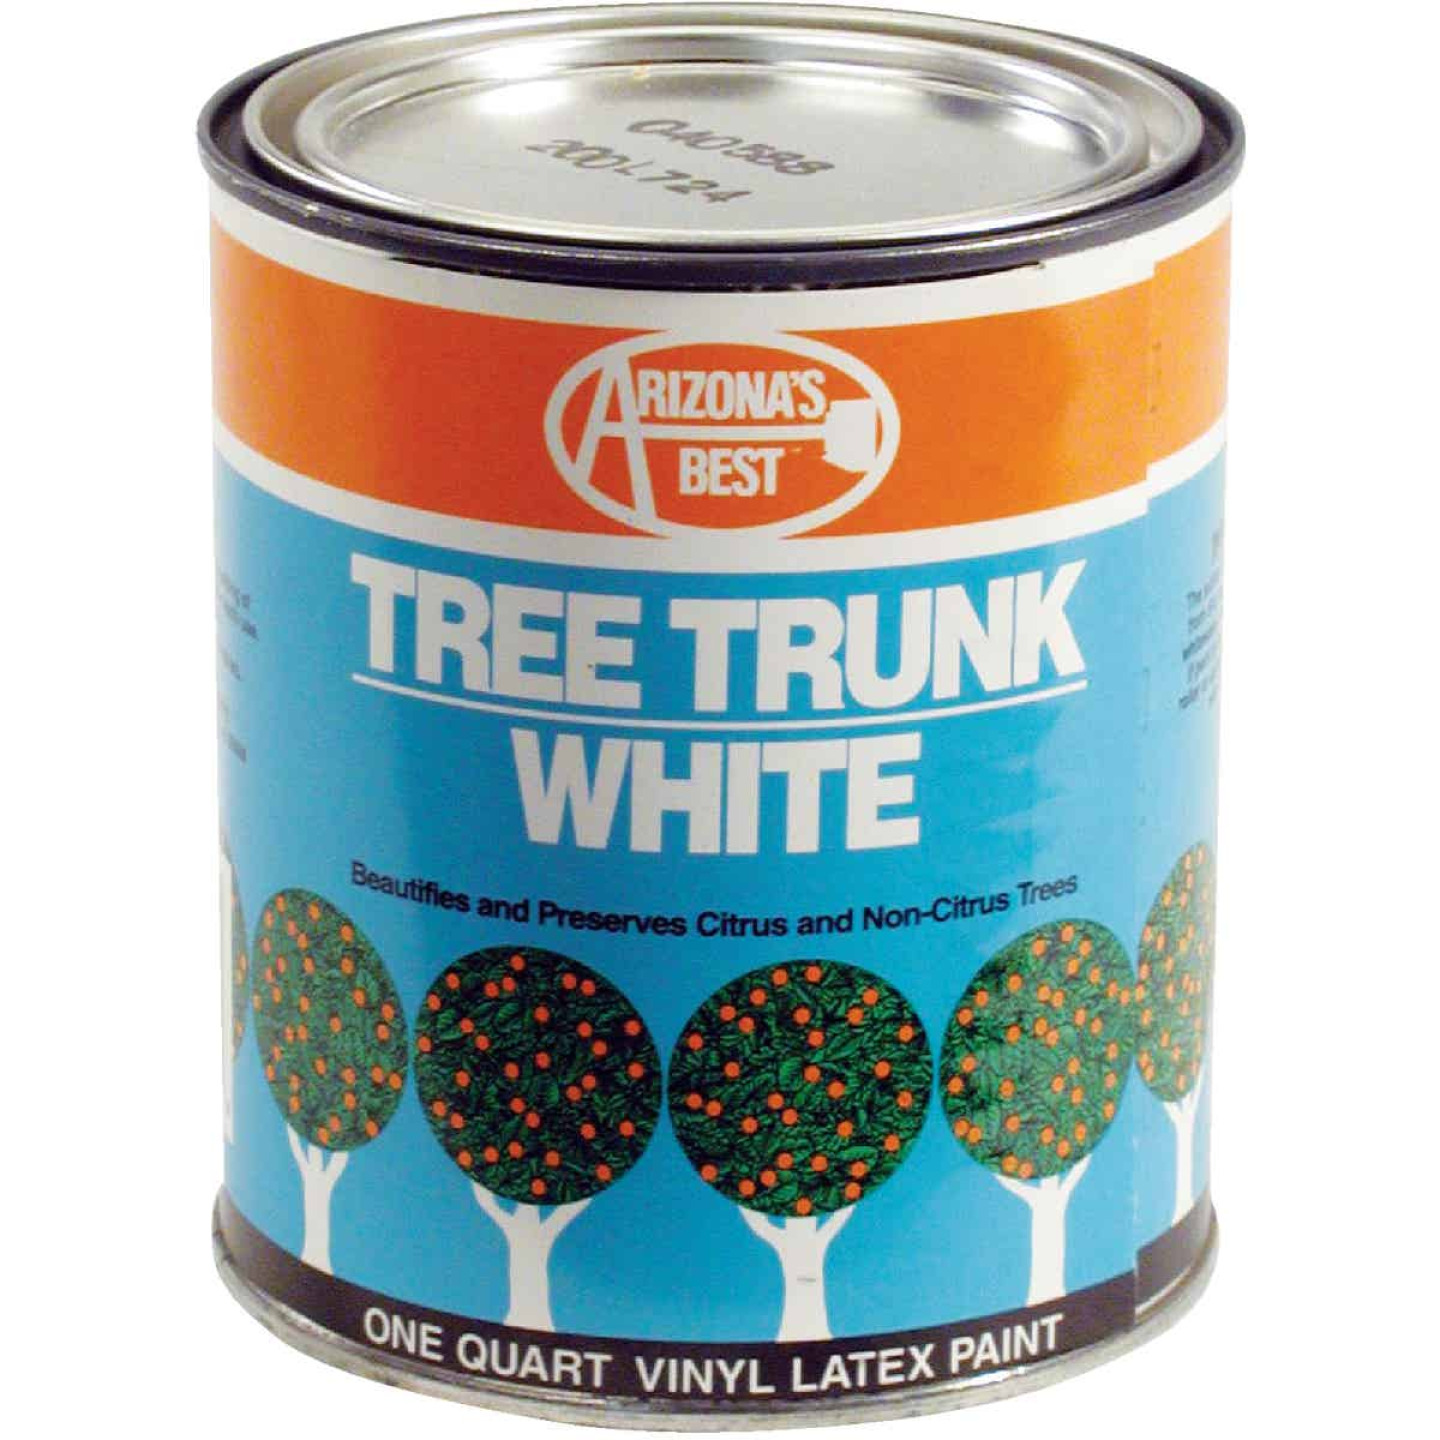 Arizona's Best White Vinyl Latex Paint 1 Quart Tree Trunk Coating Image 1